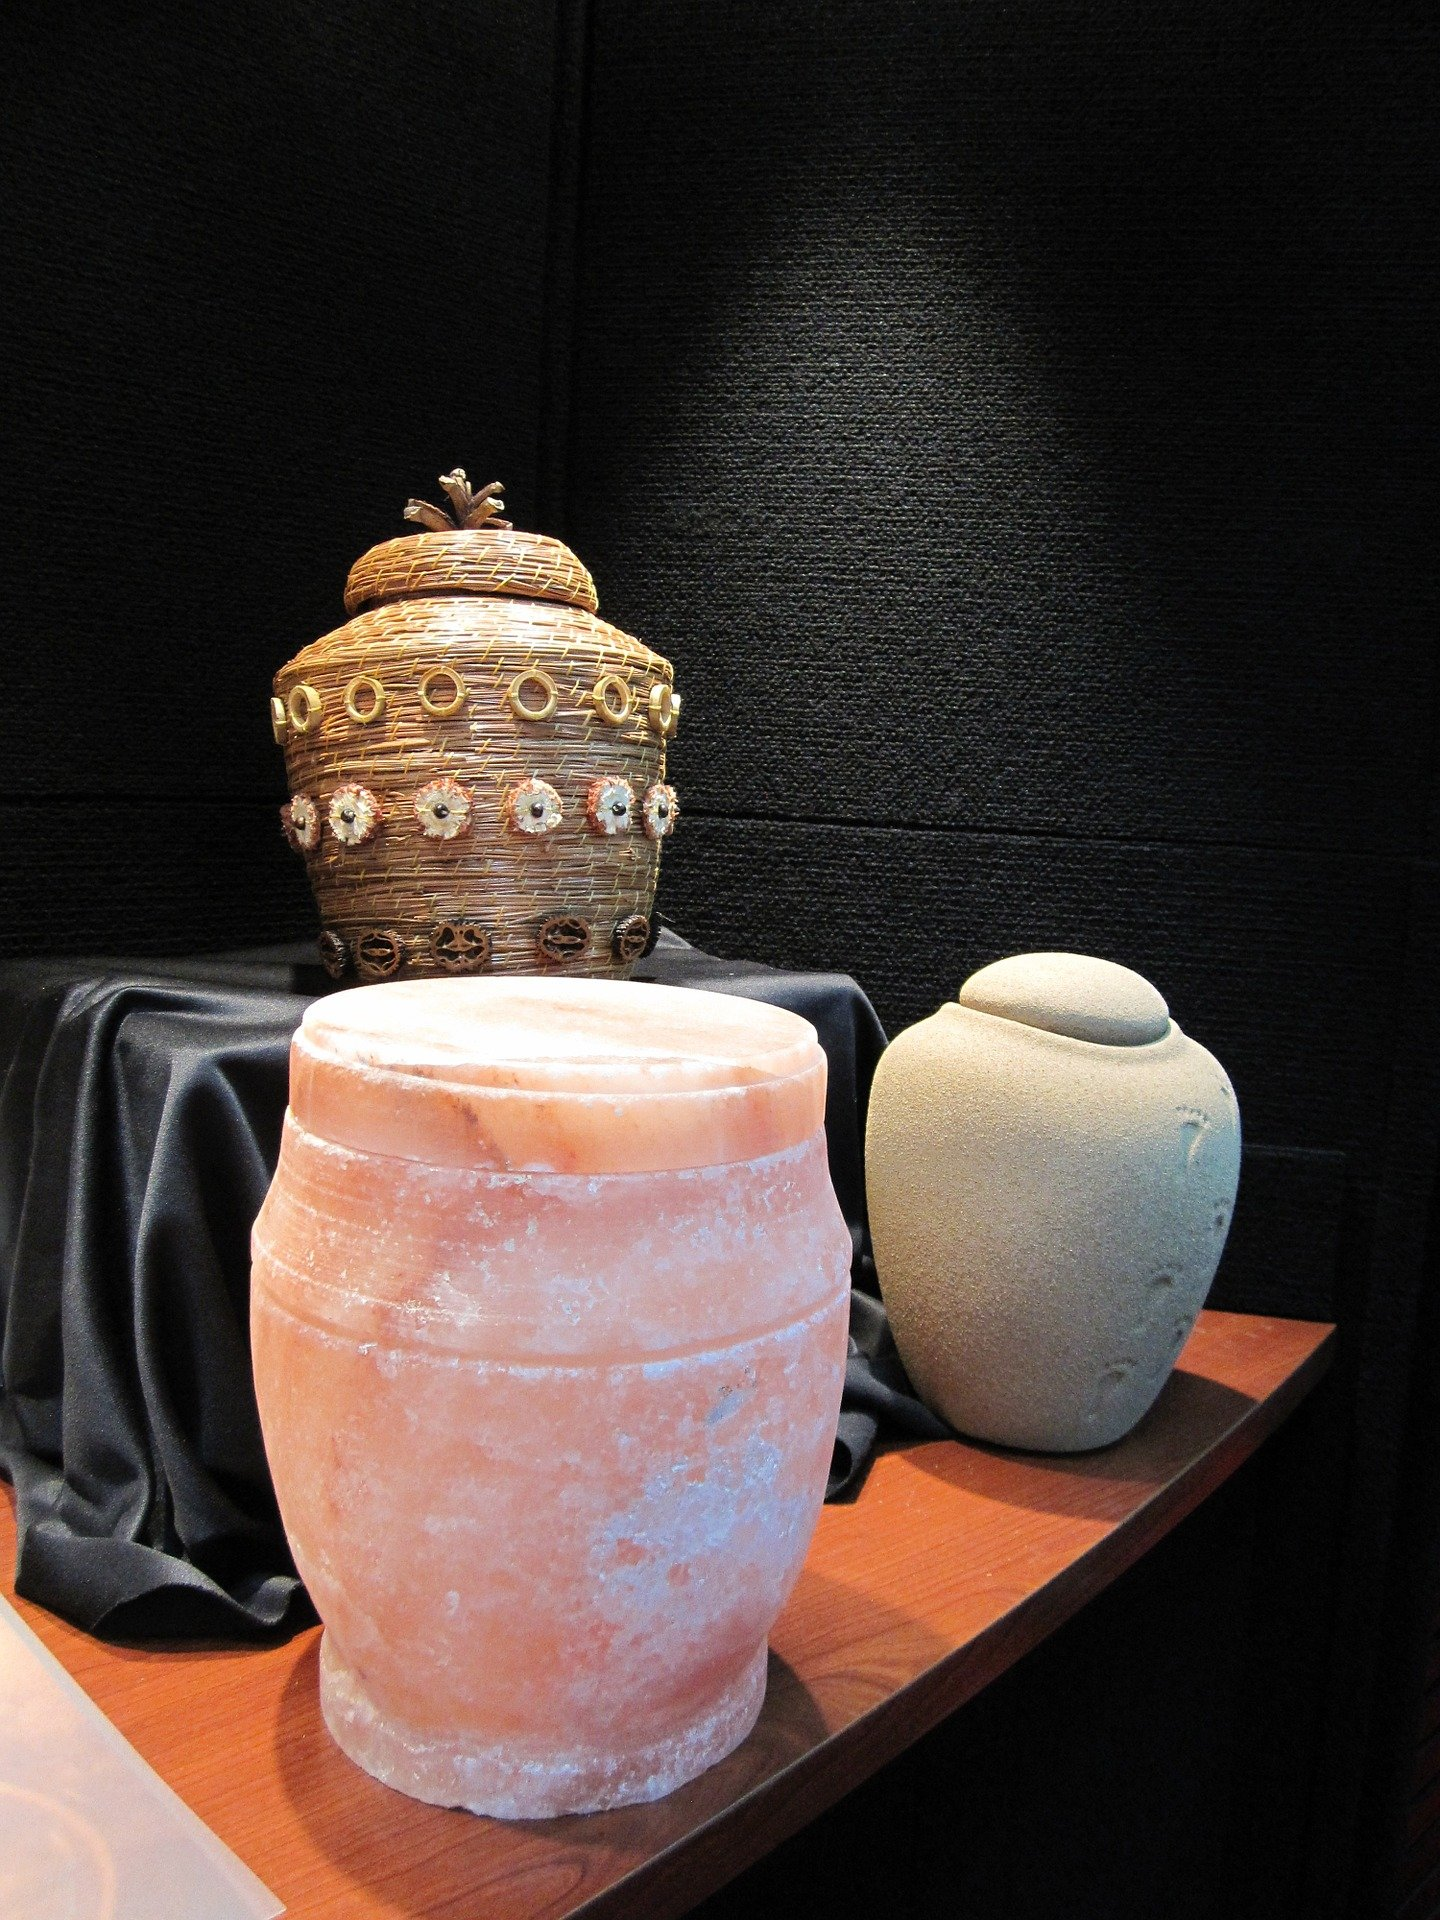 Pictured - Three different types of urns placed on a brown table | Source: Pixabay